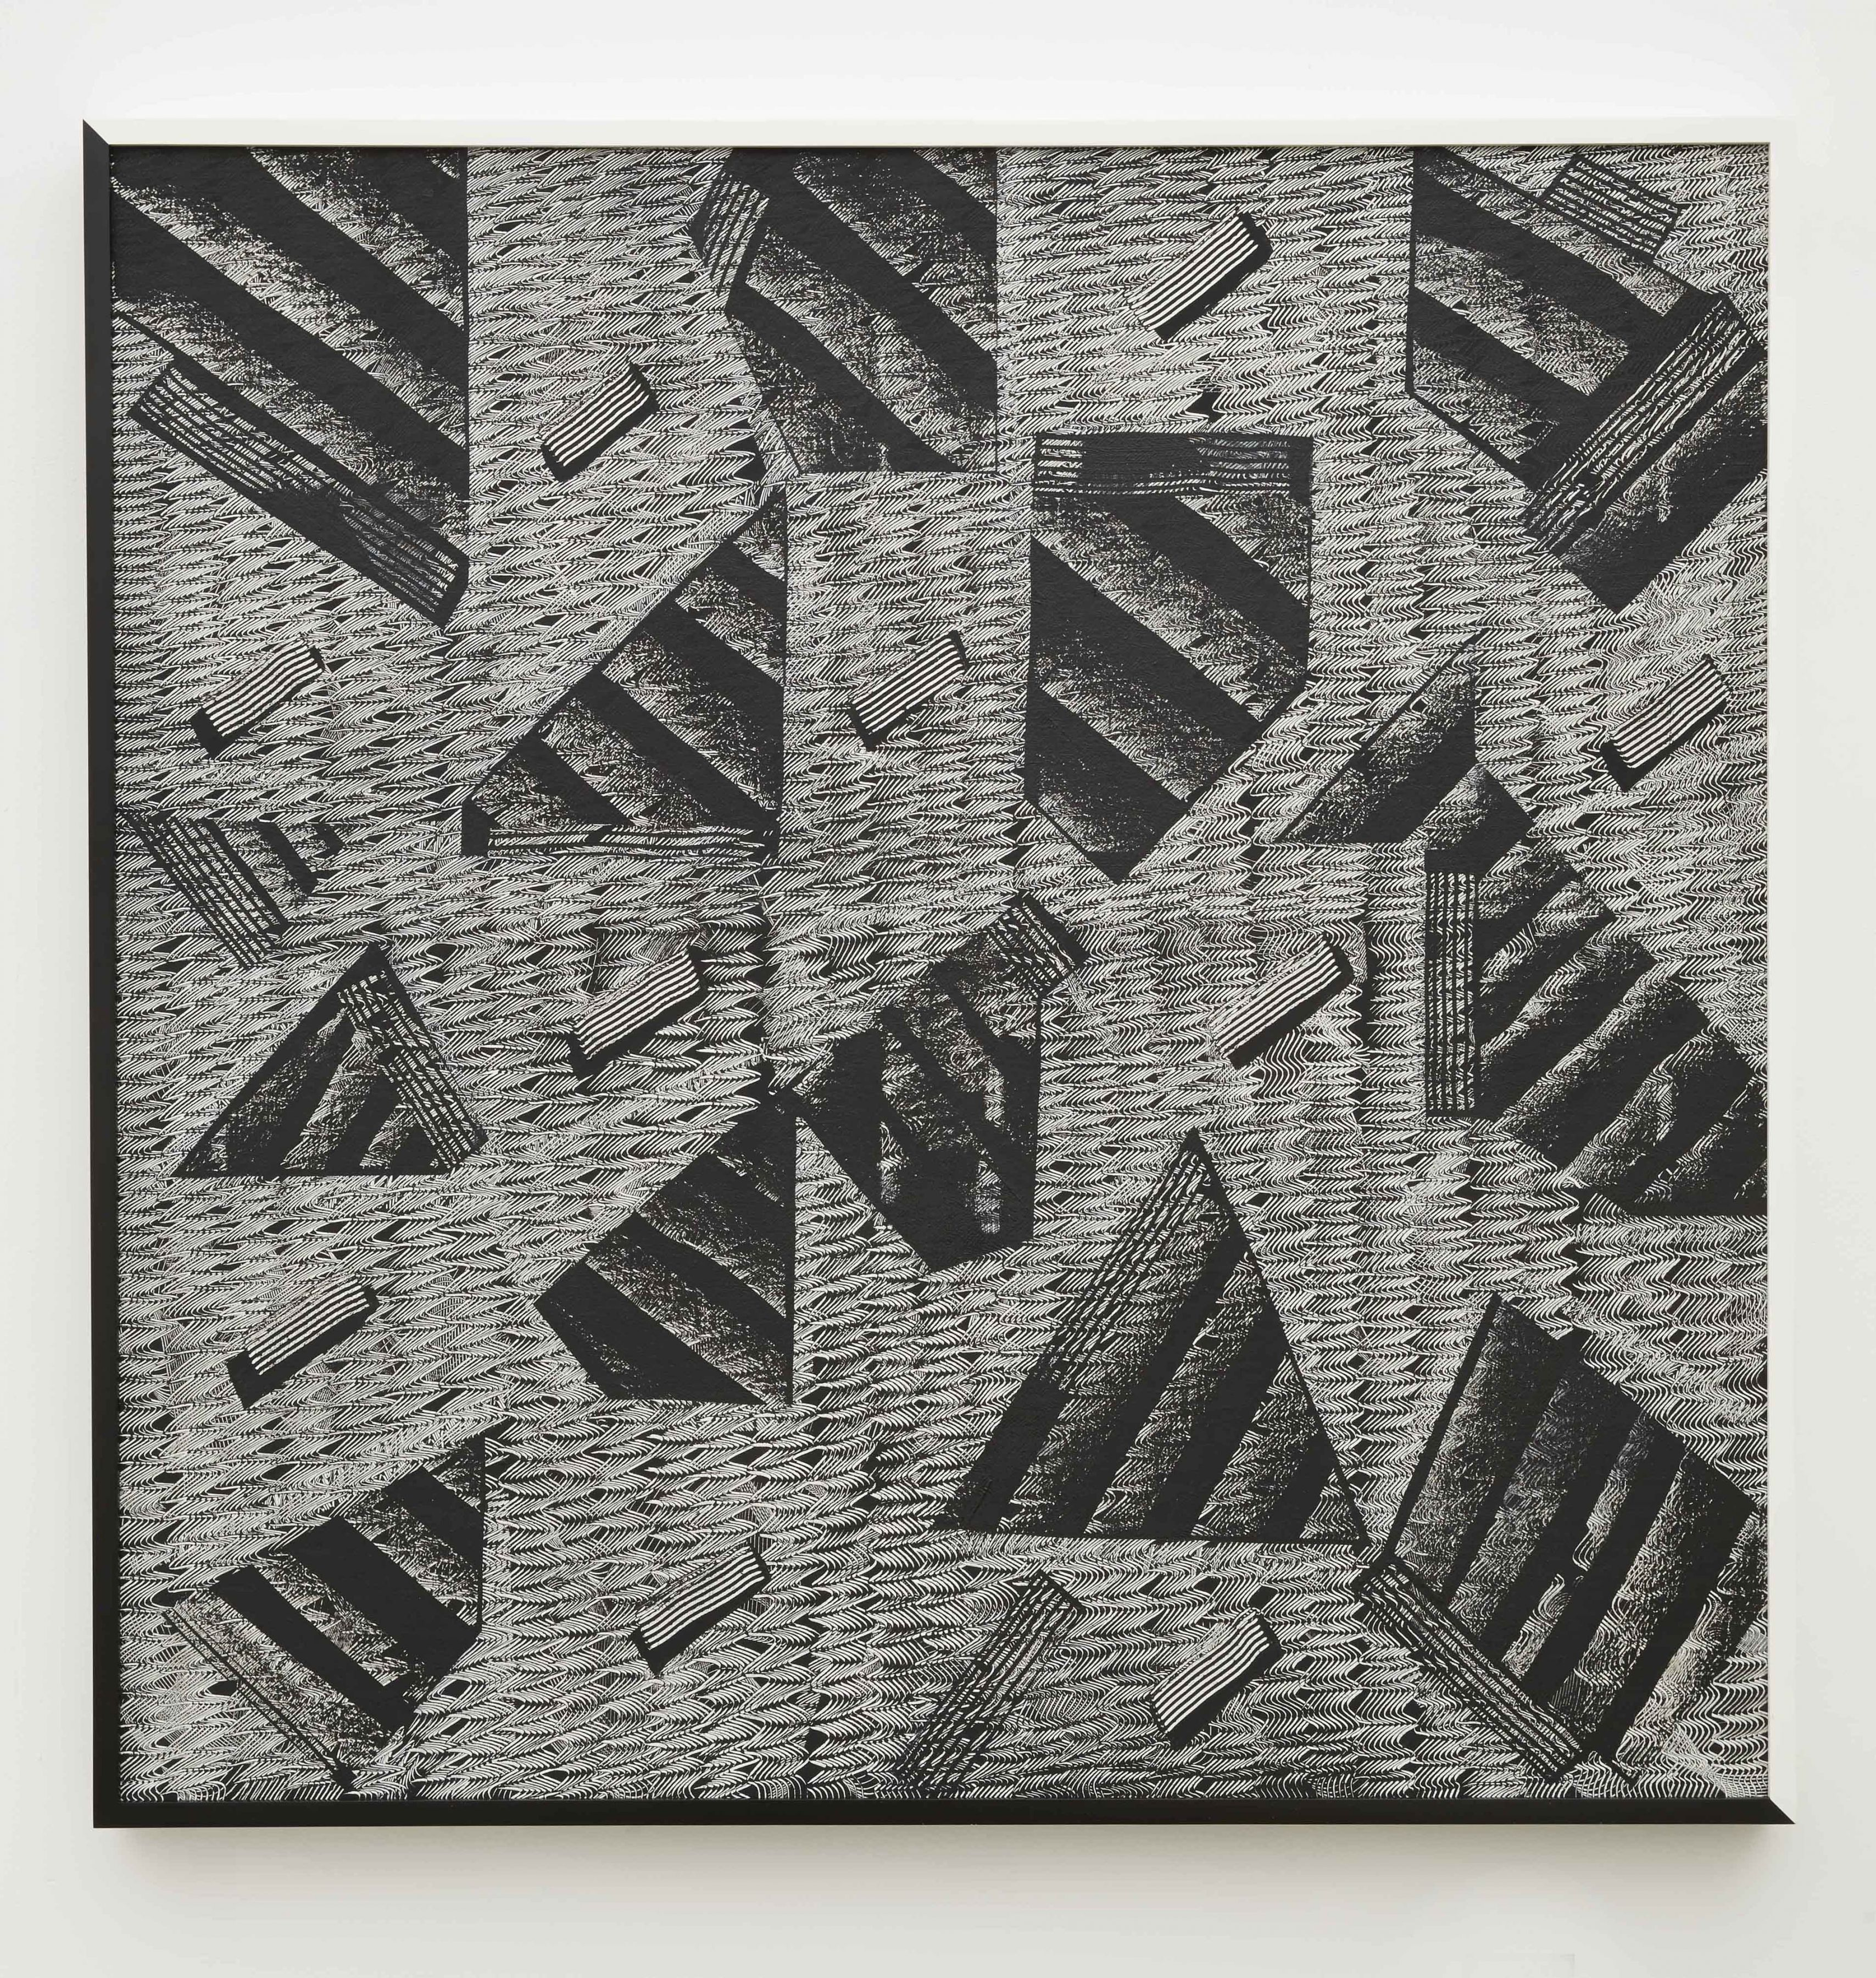 an abstract painting of black and white shapes by artist Julia Dault